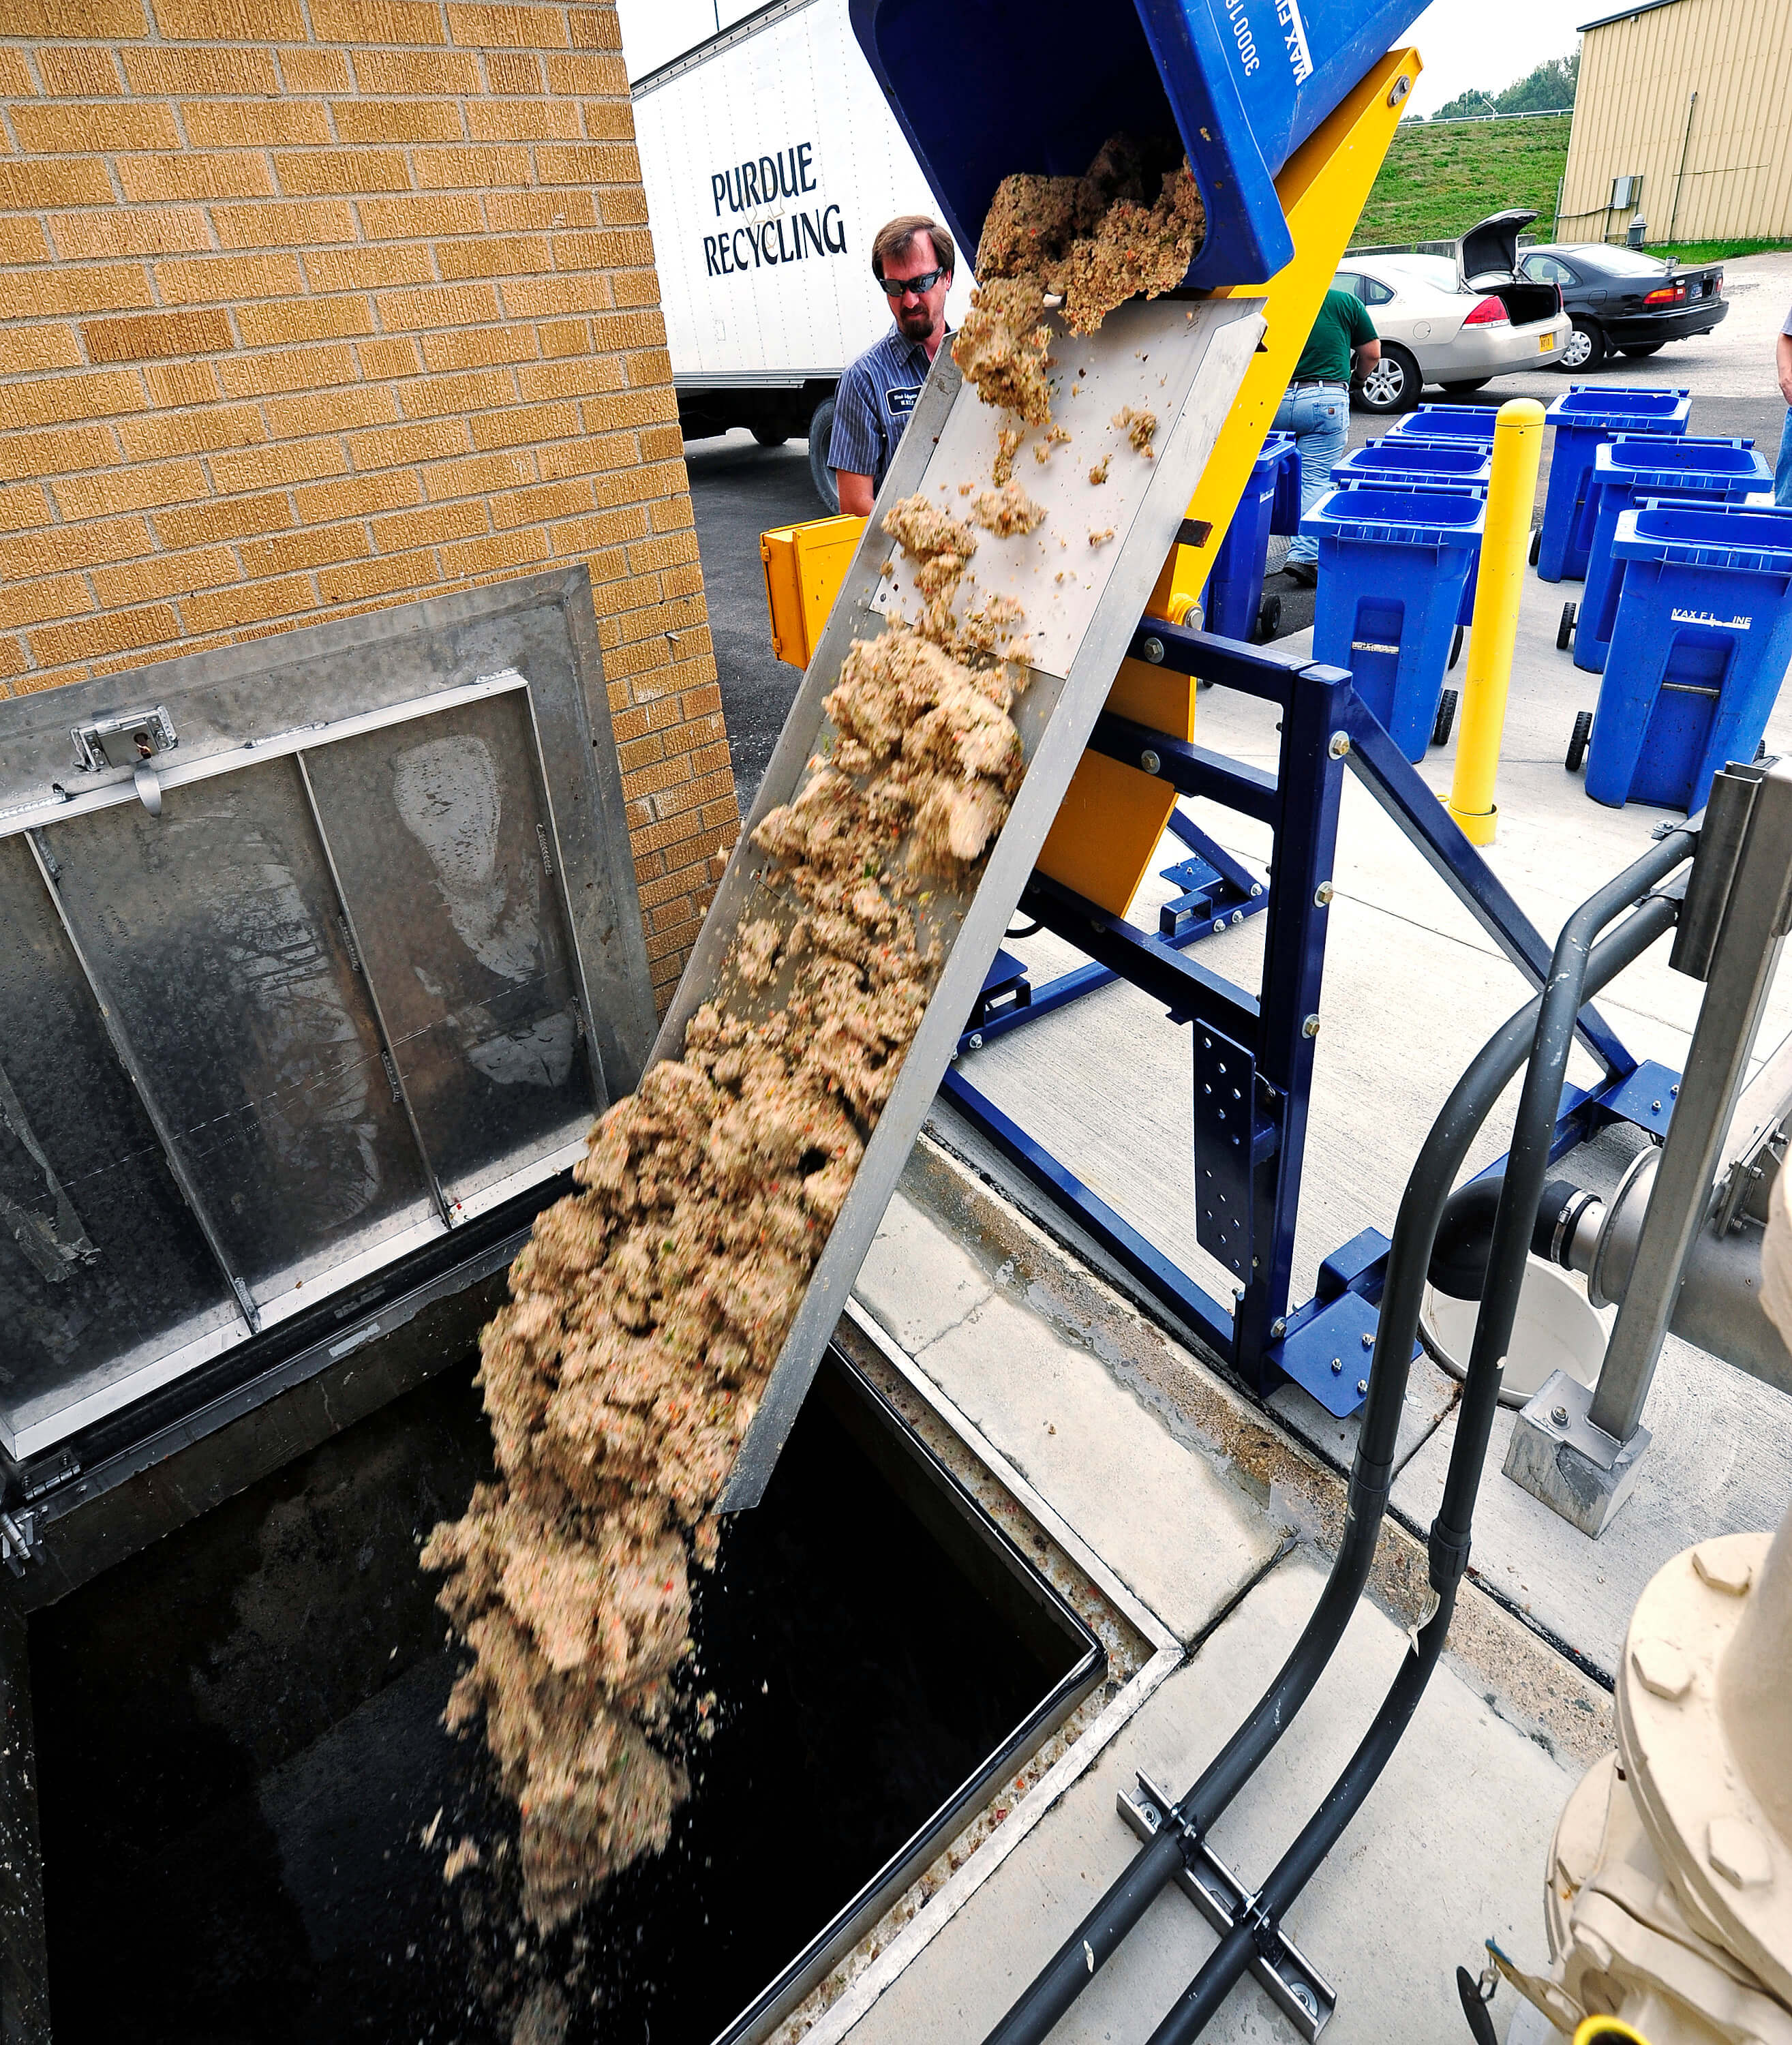 Purdue helps power treatment plant with food scraps